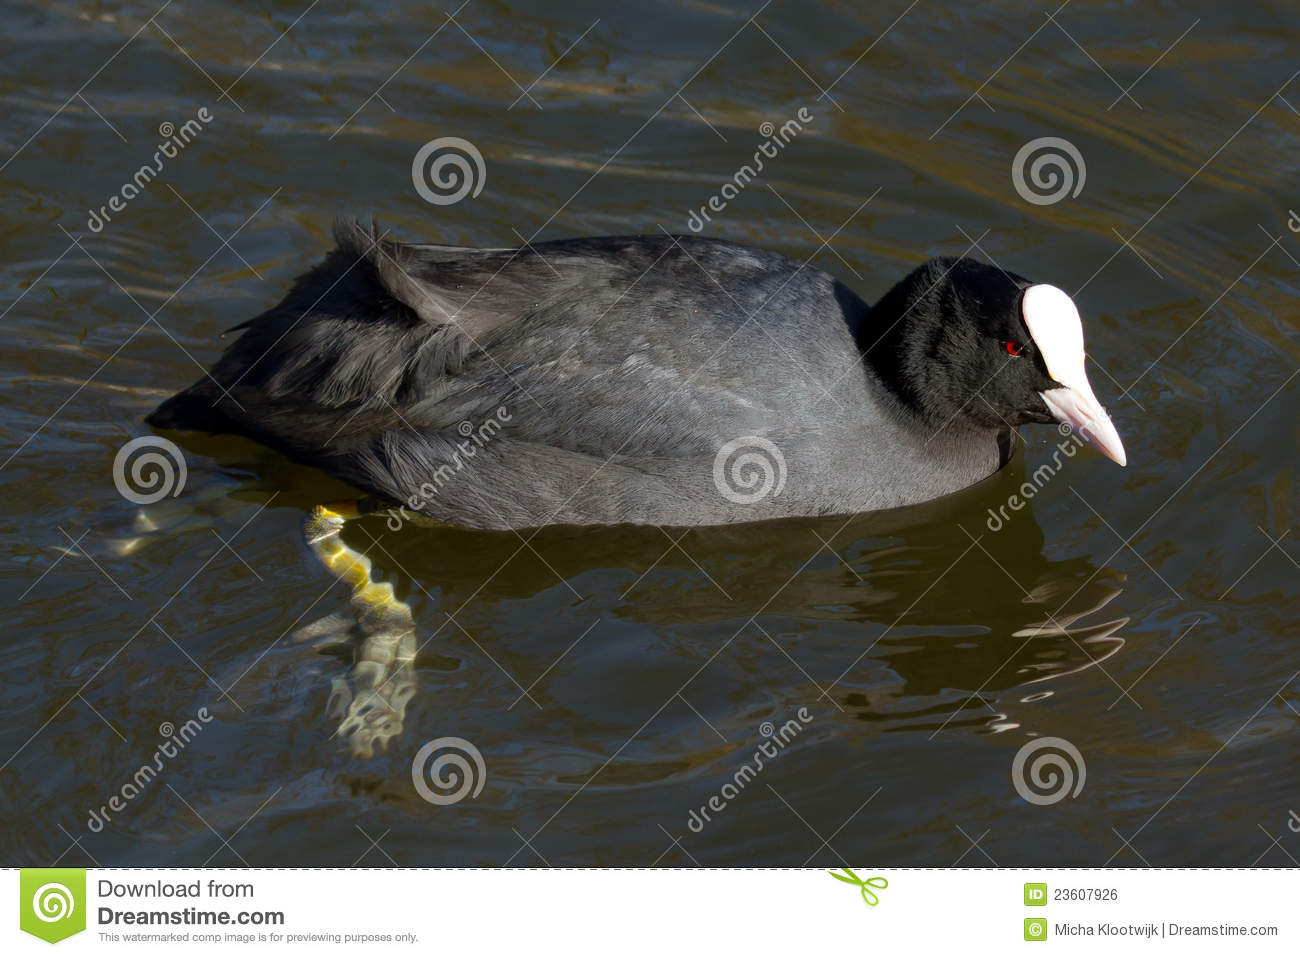 A coot is swimming